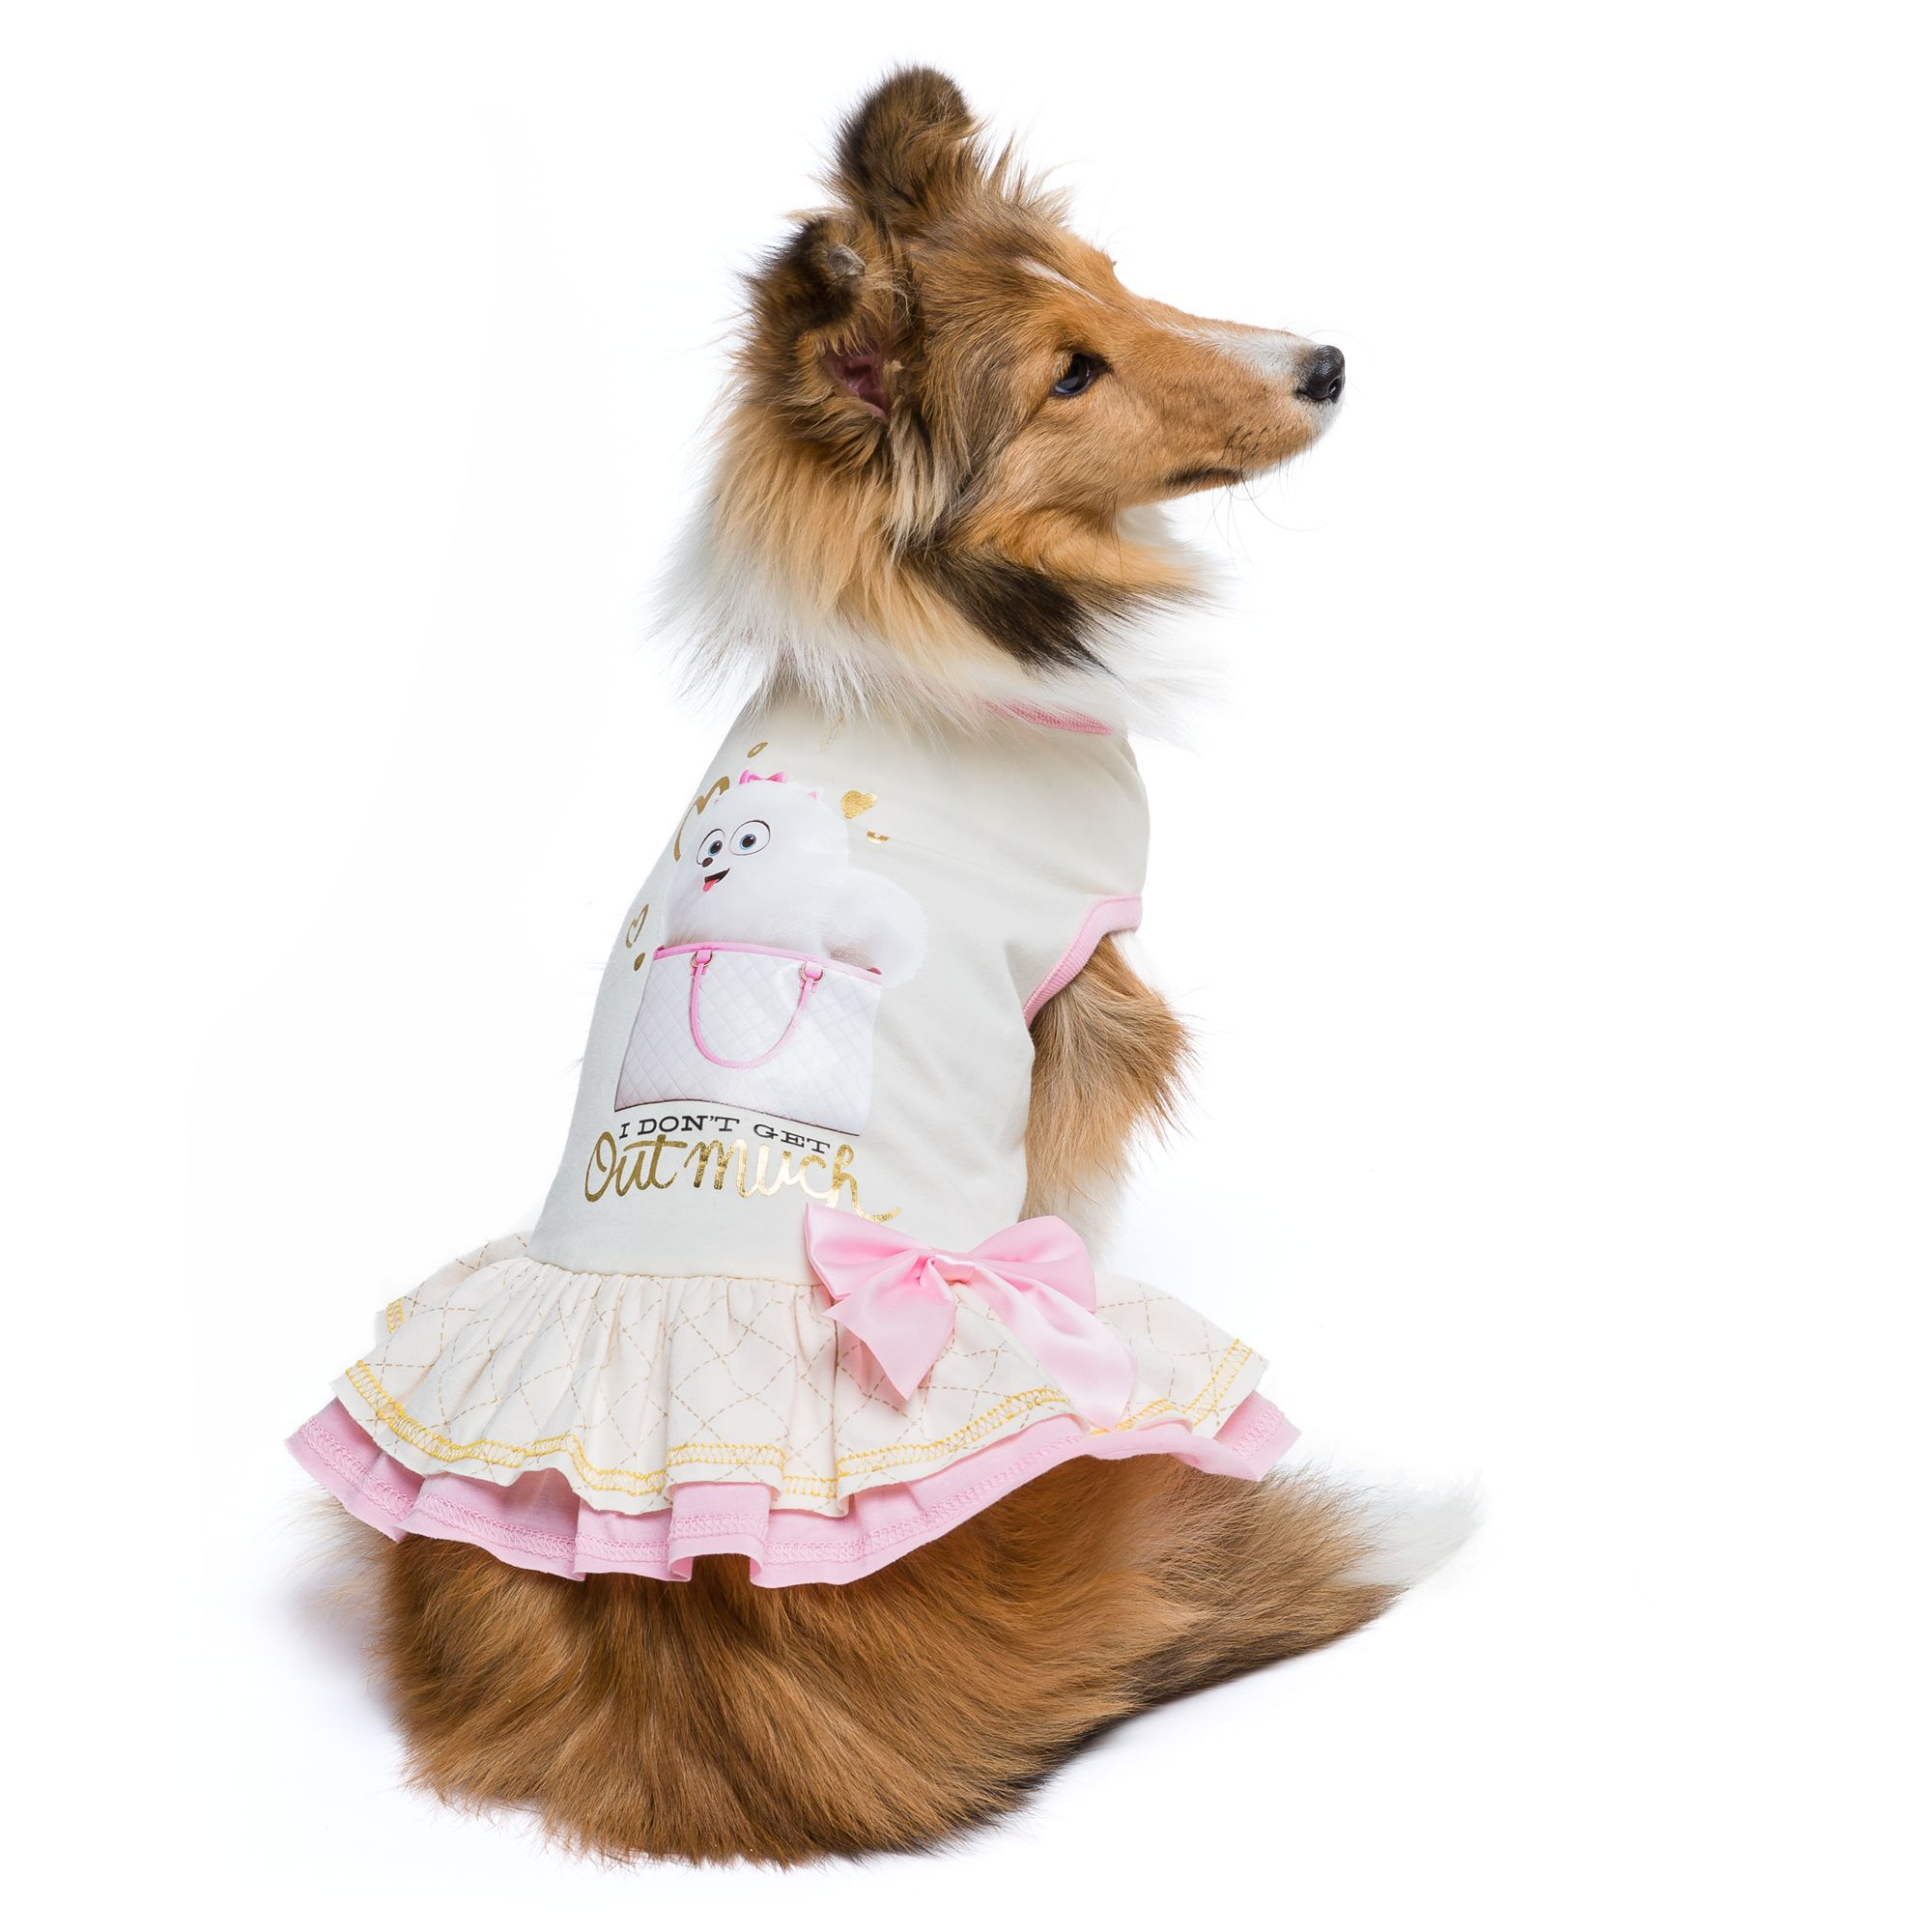 The Secret Life of Pets Gidget Dress size: Small 5251079